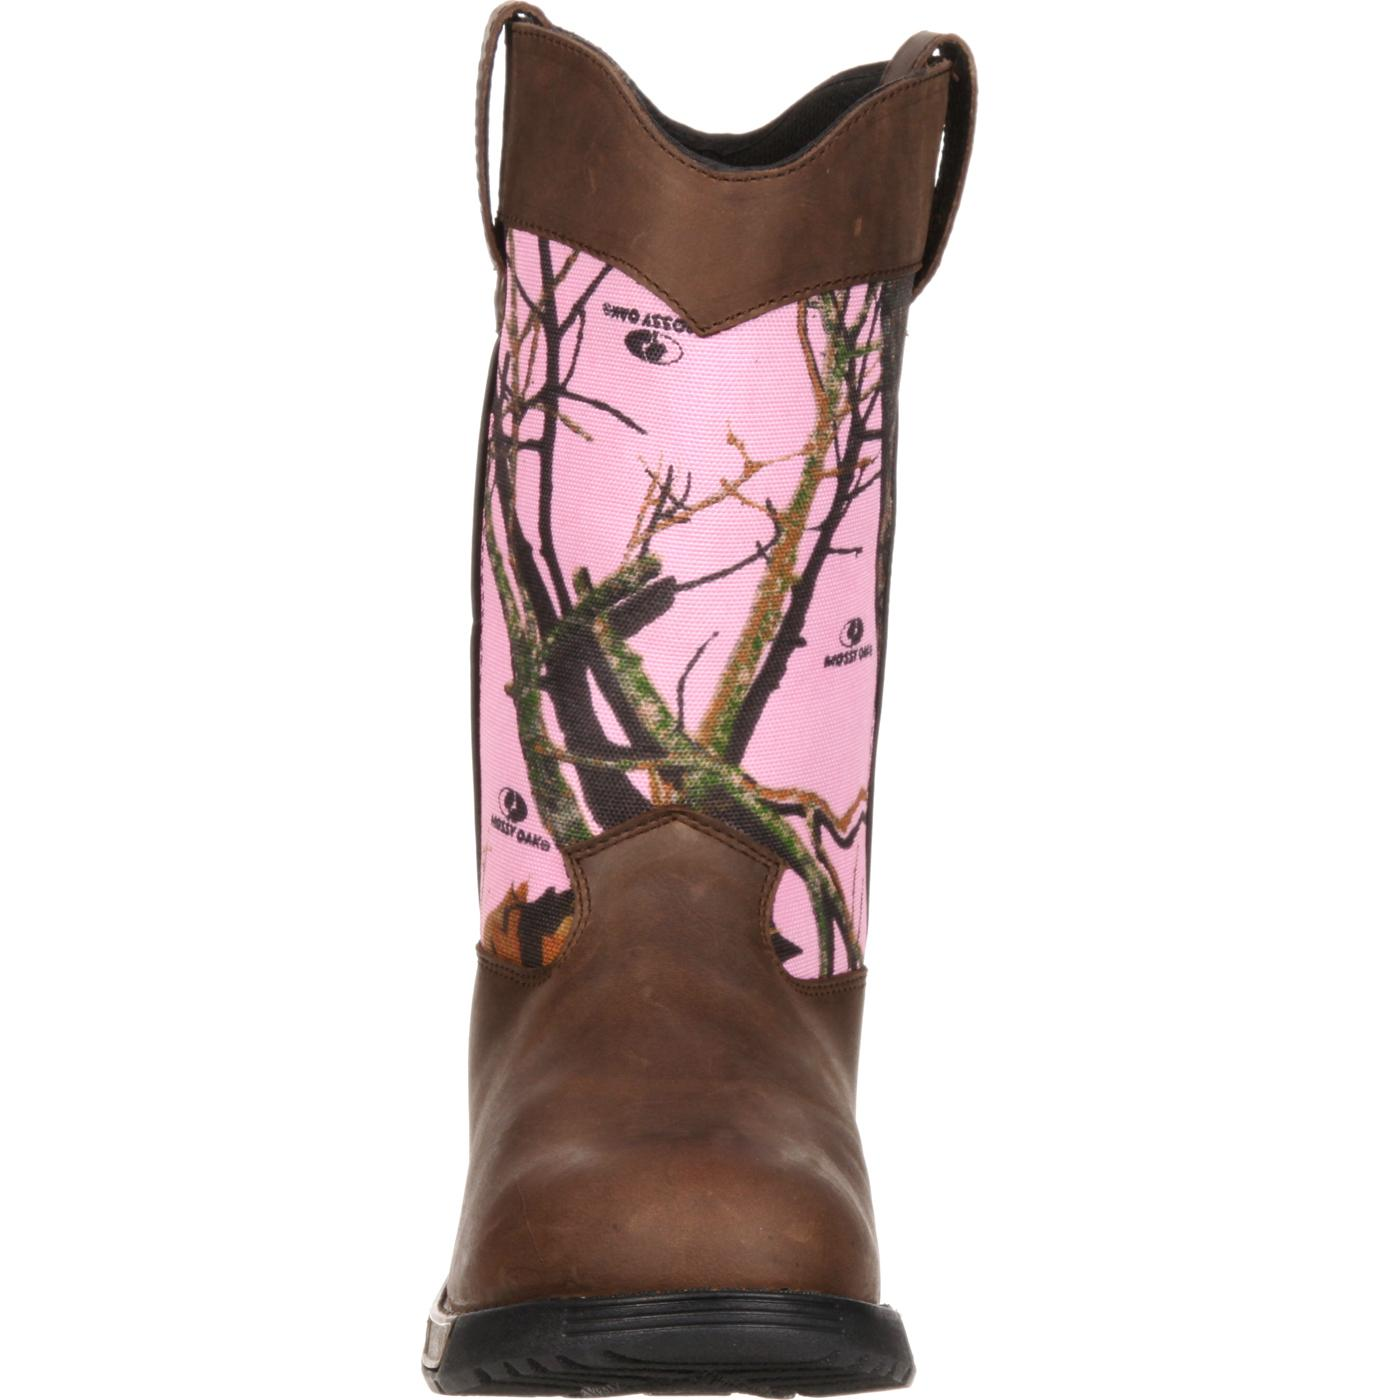 Women's Pink Camouflage Boot, Rocky Aztec style #RKYS133